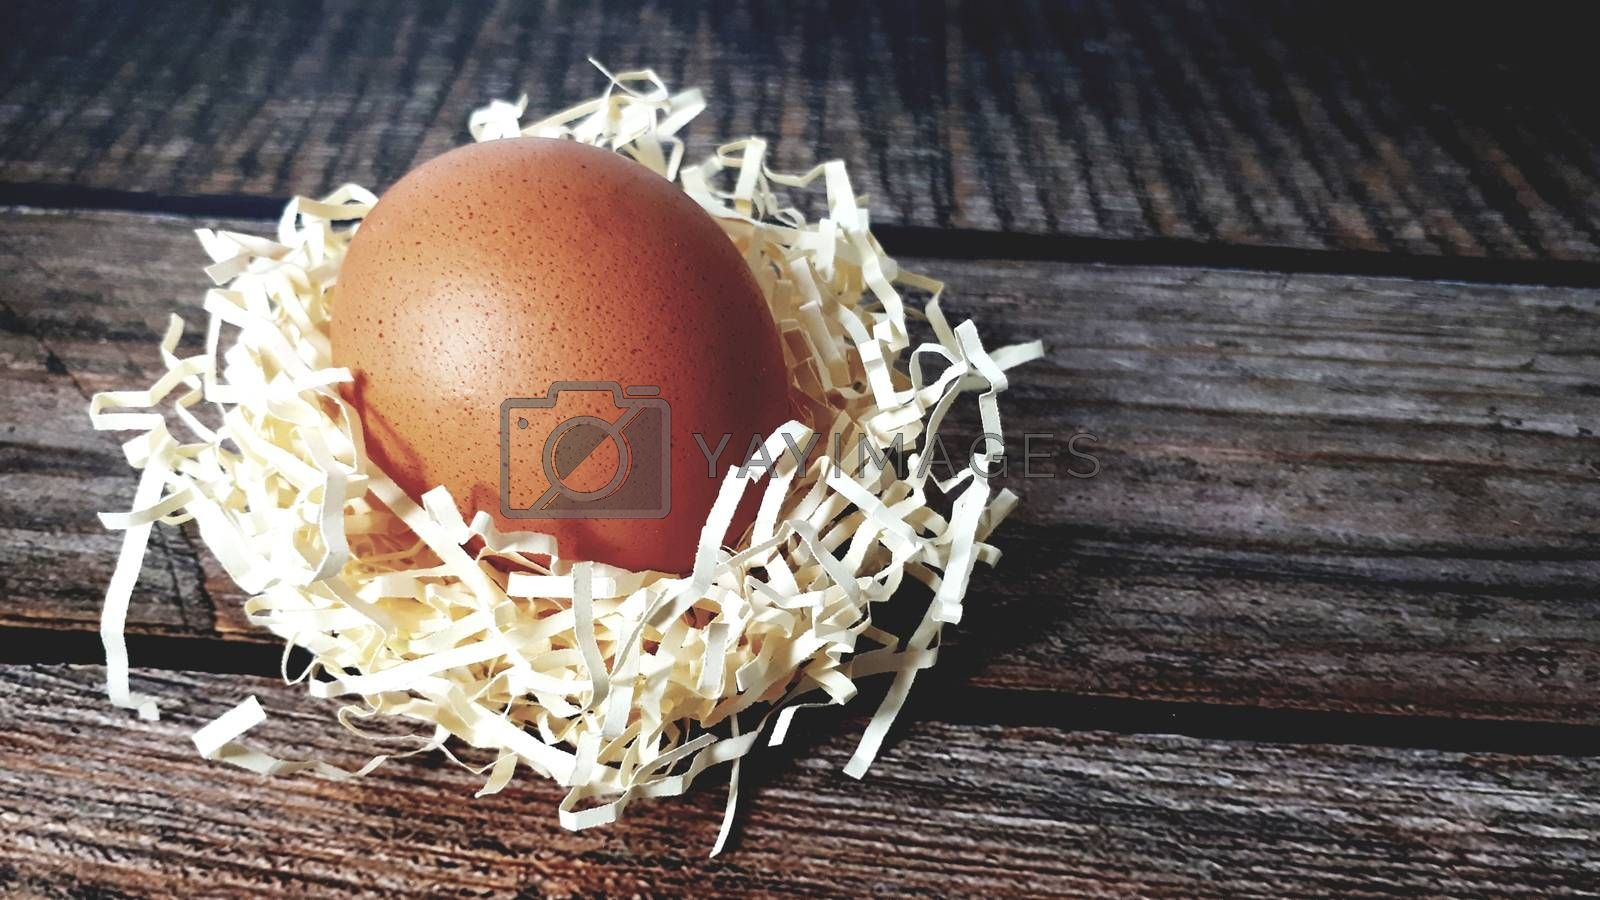 Chicken egg in a nest of straw on a wooden table. Close-up.